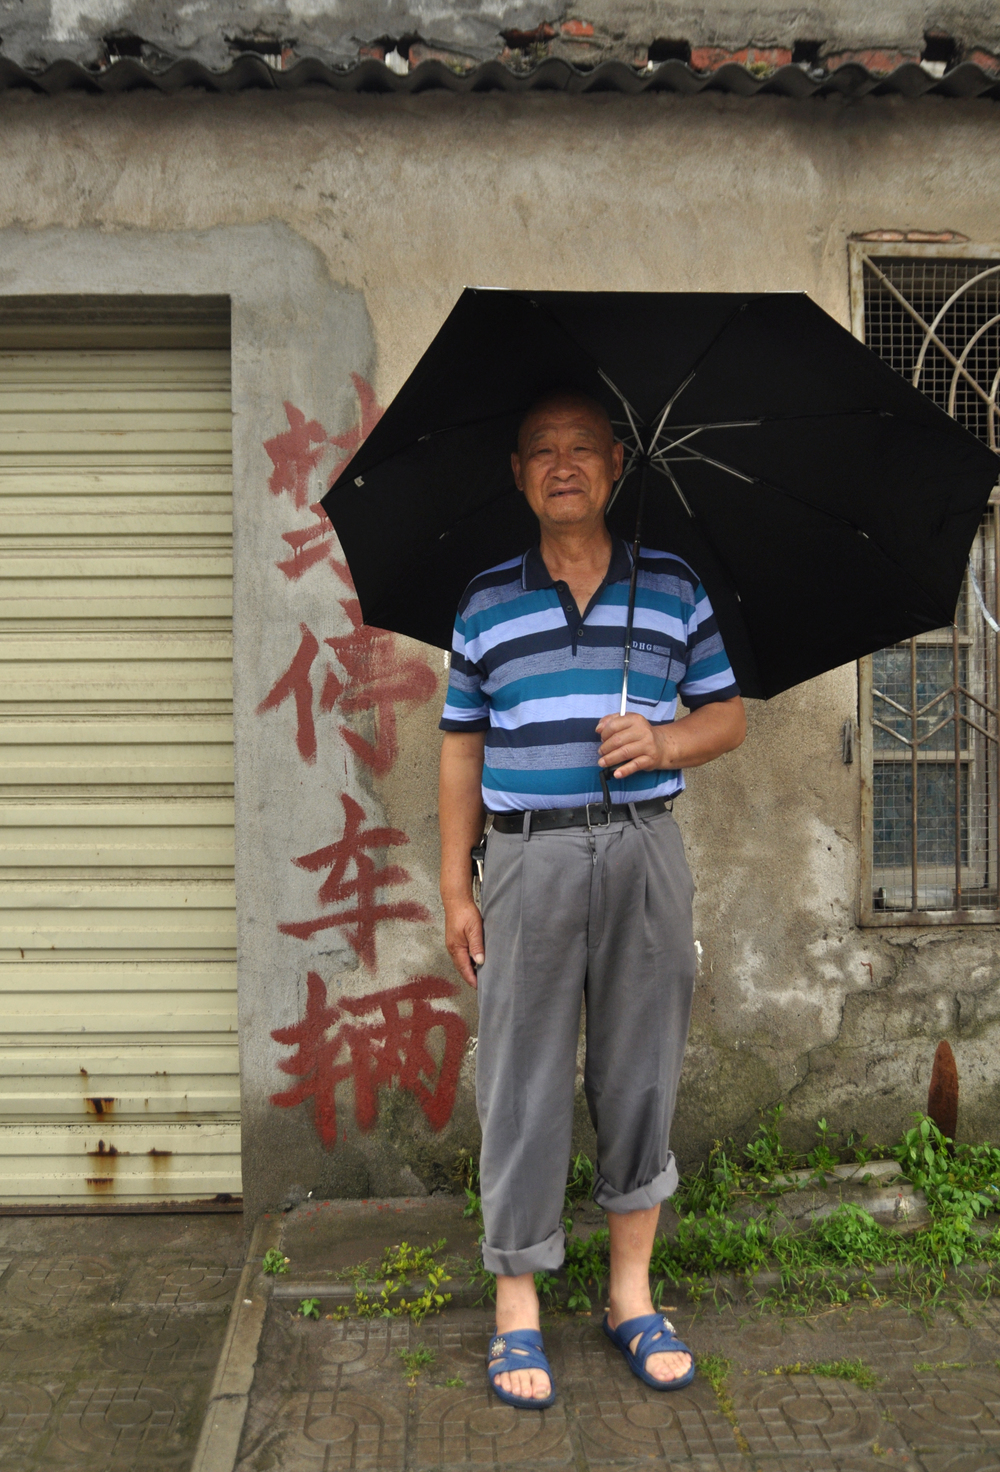 MAN WITH UMBRELLA.jpg